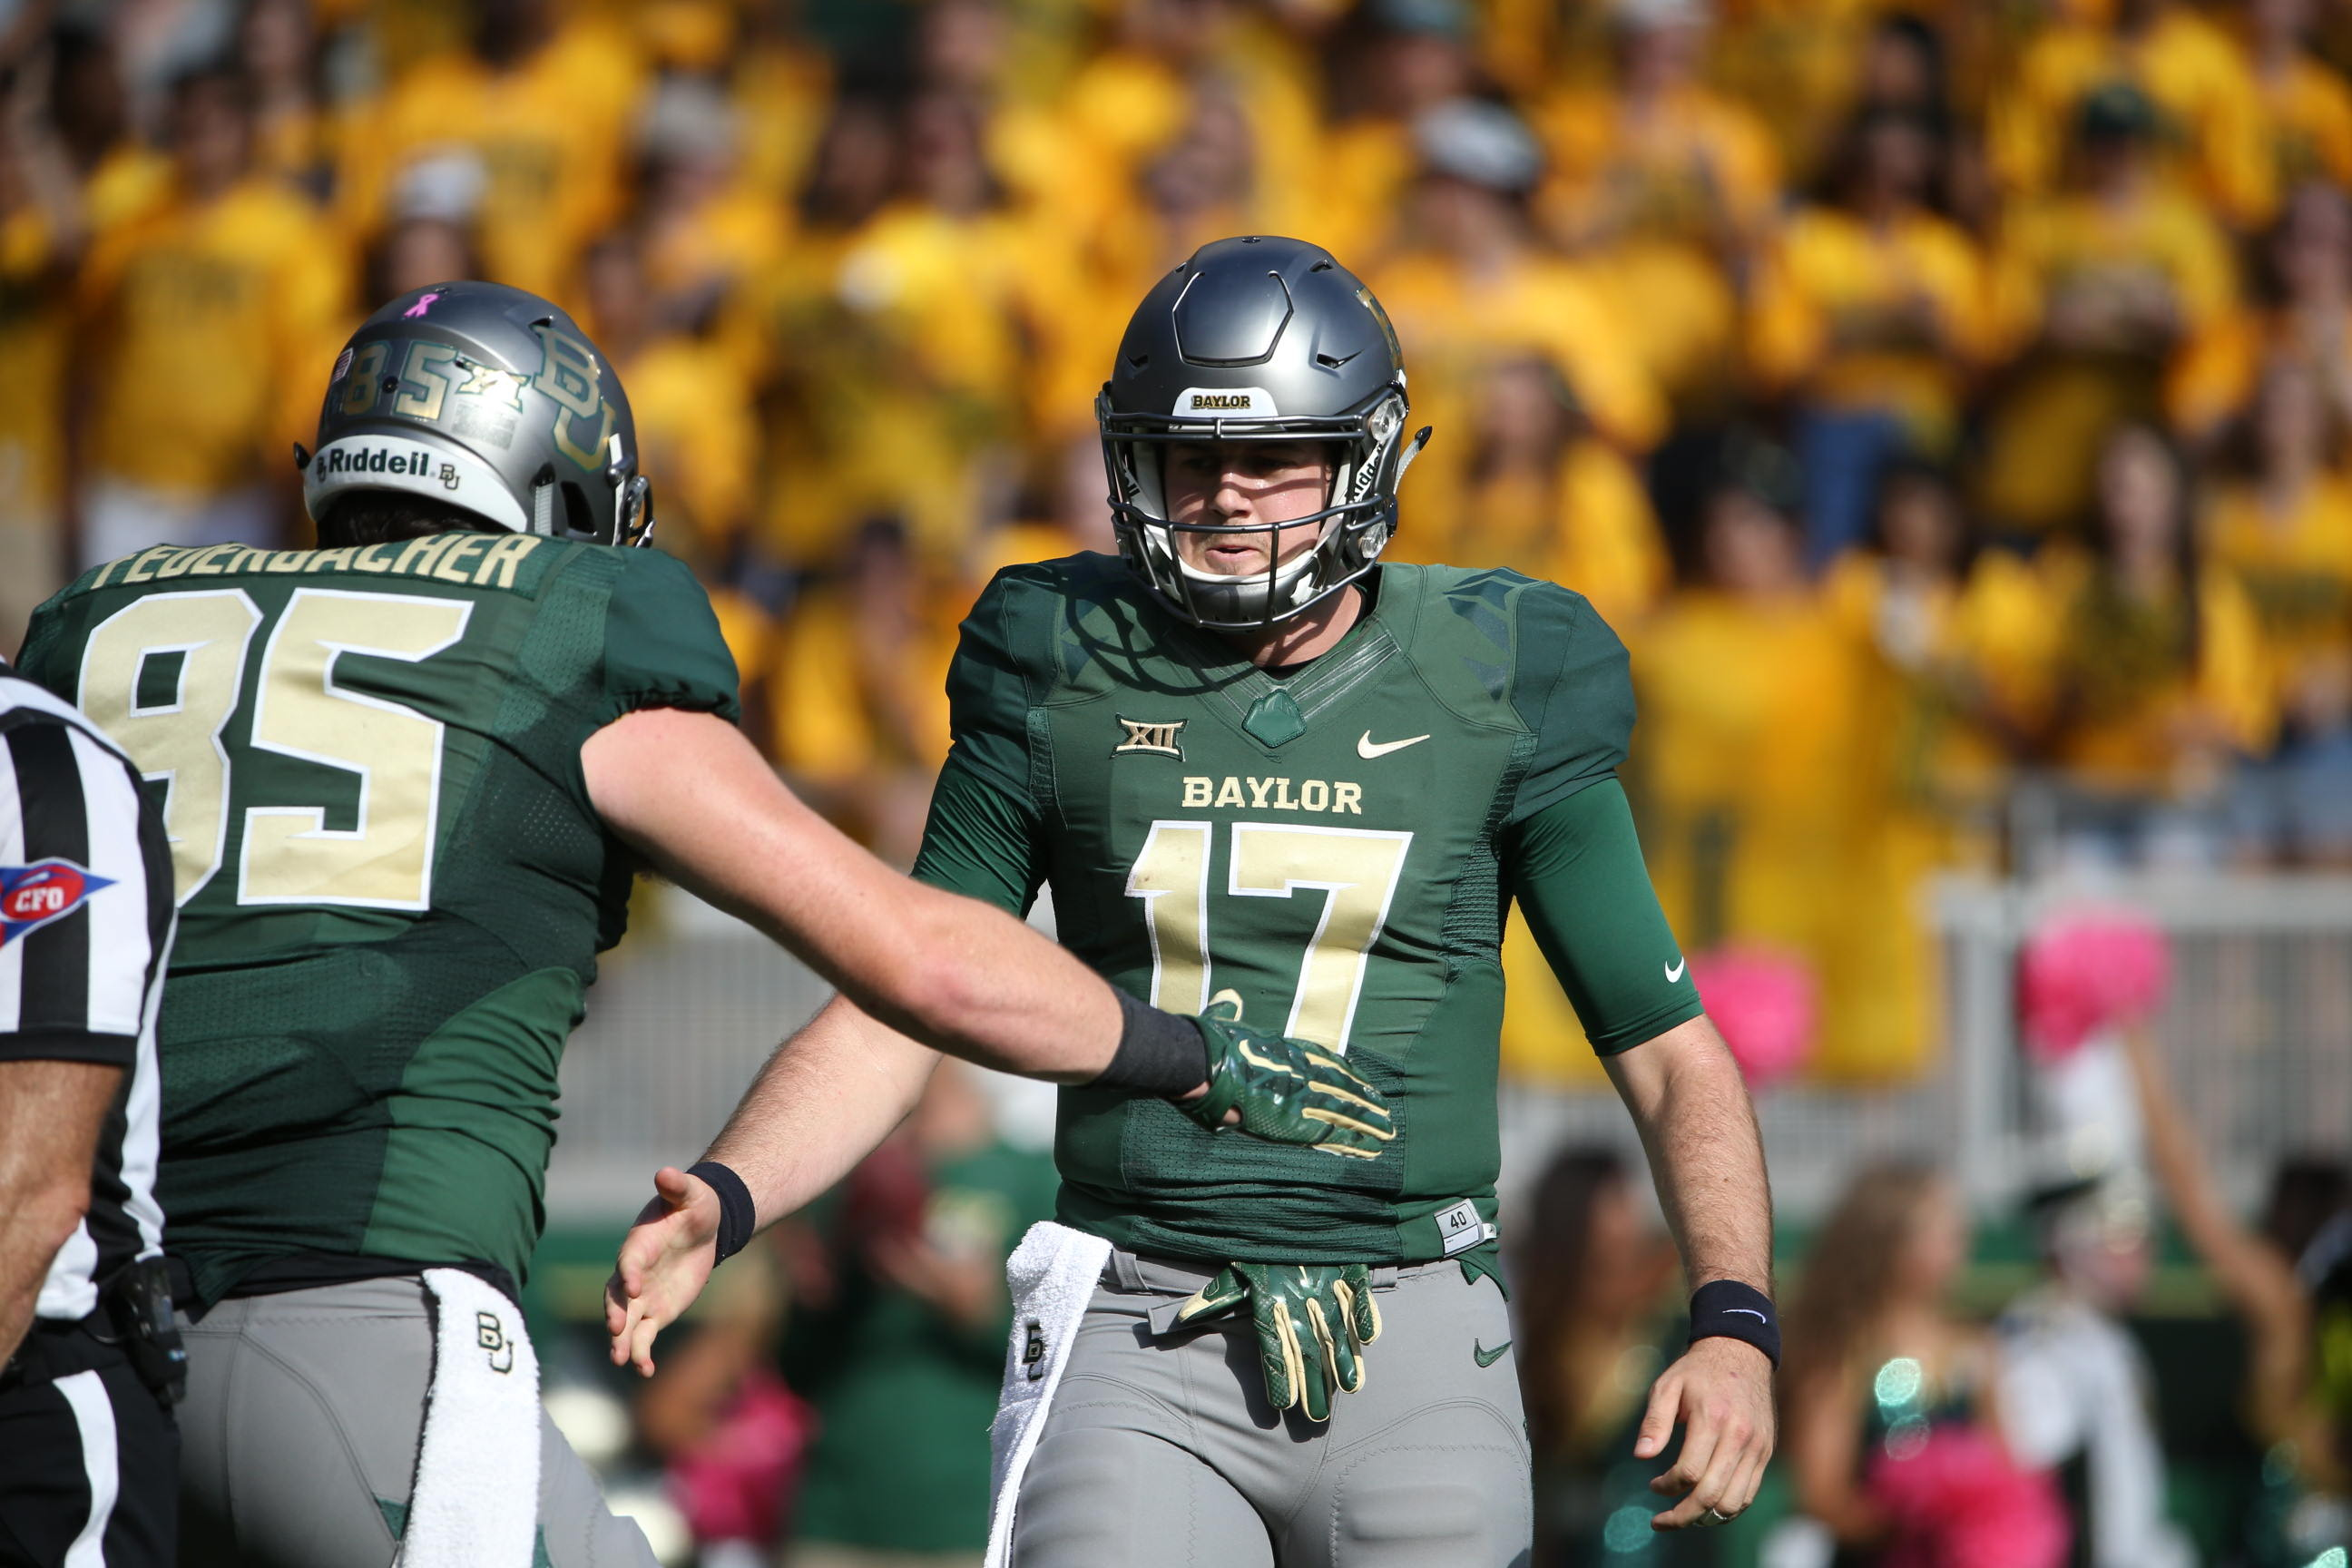 Football S Texas Contest Scheduled For 2 30 P M Kick Baylor University Athletics